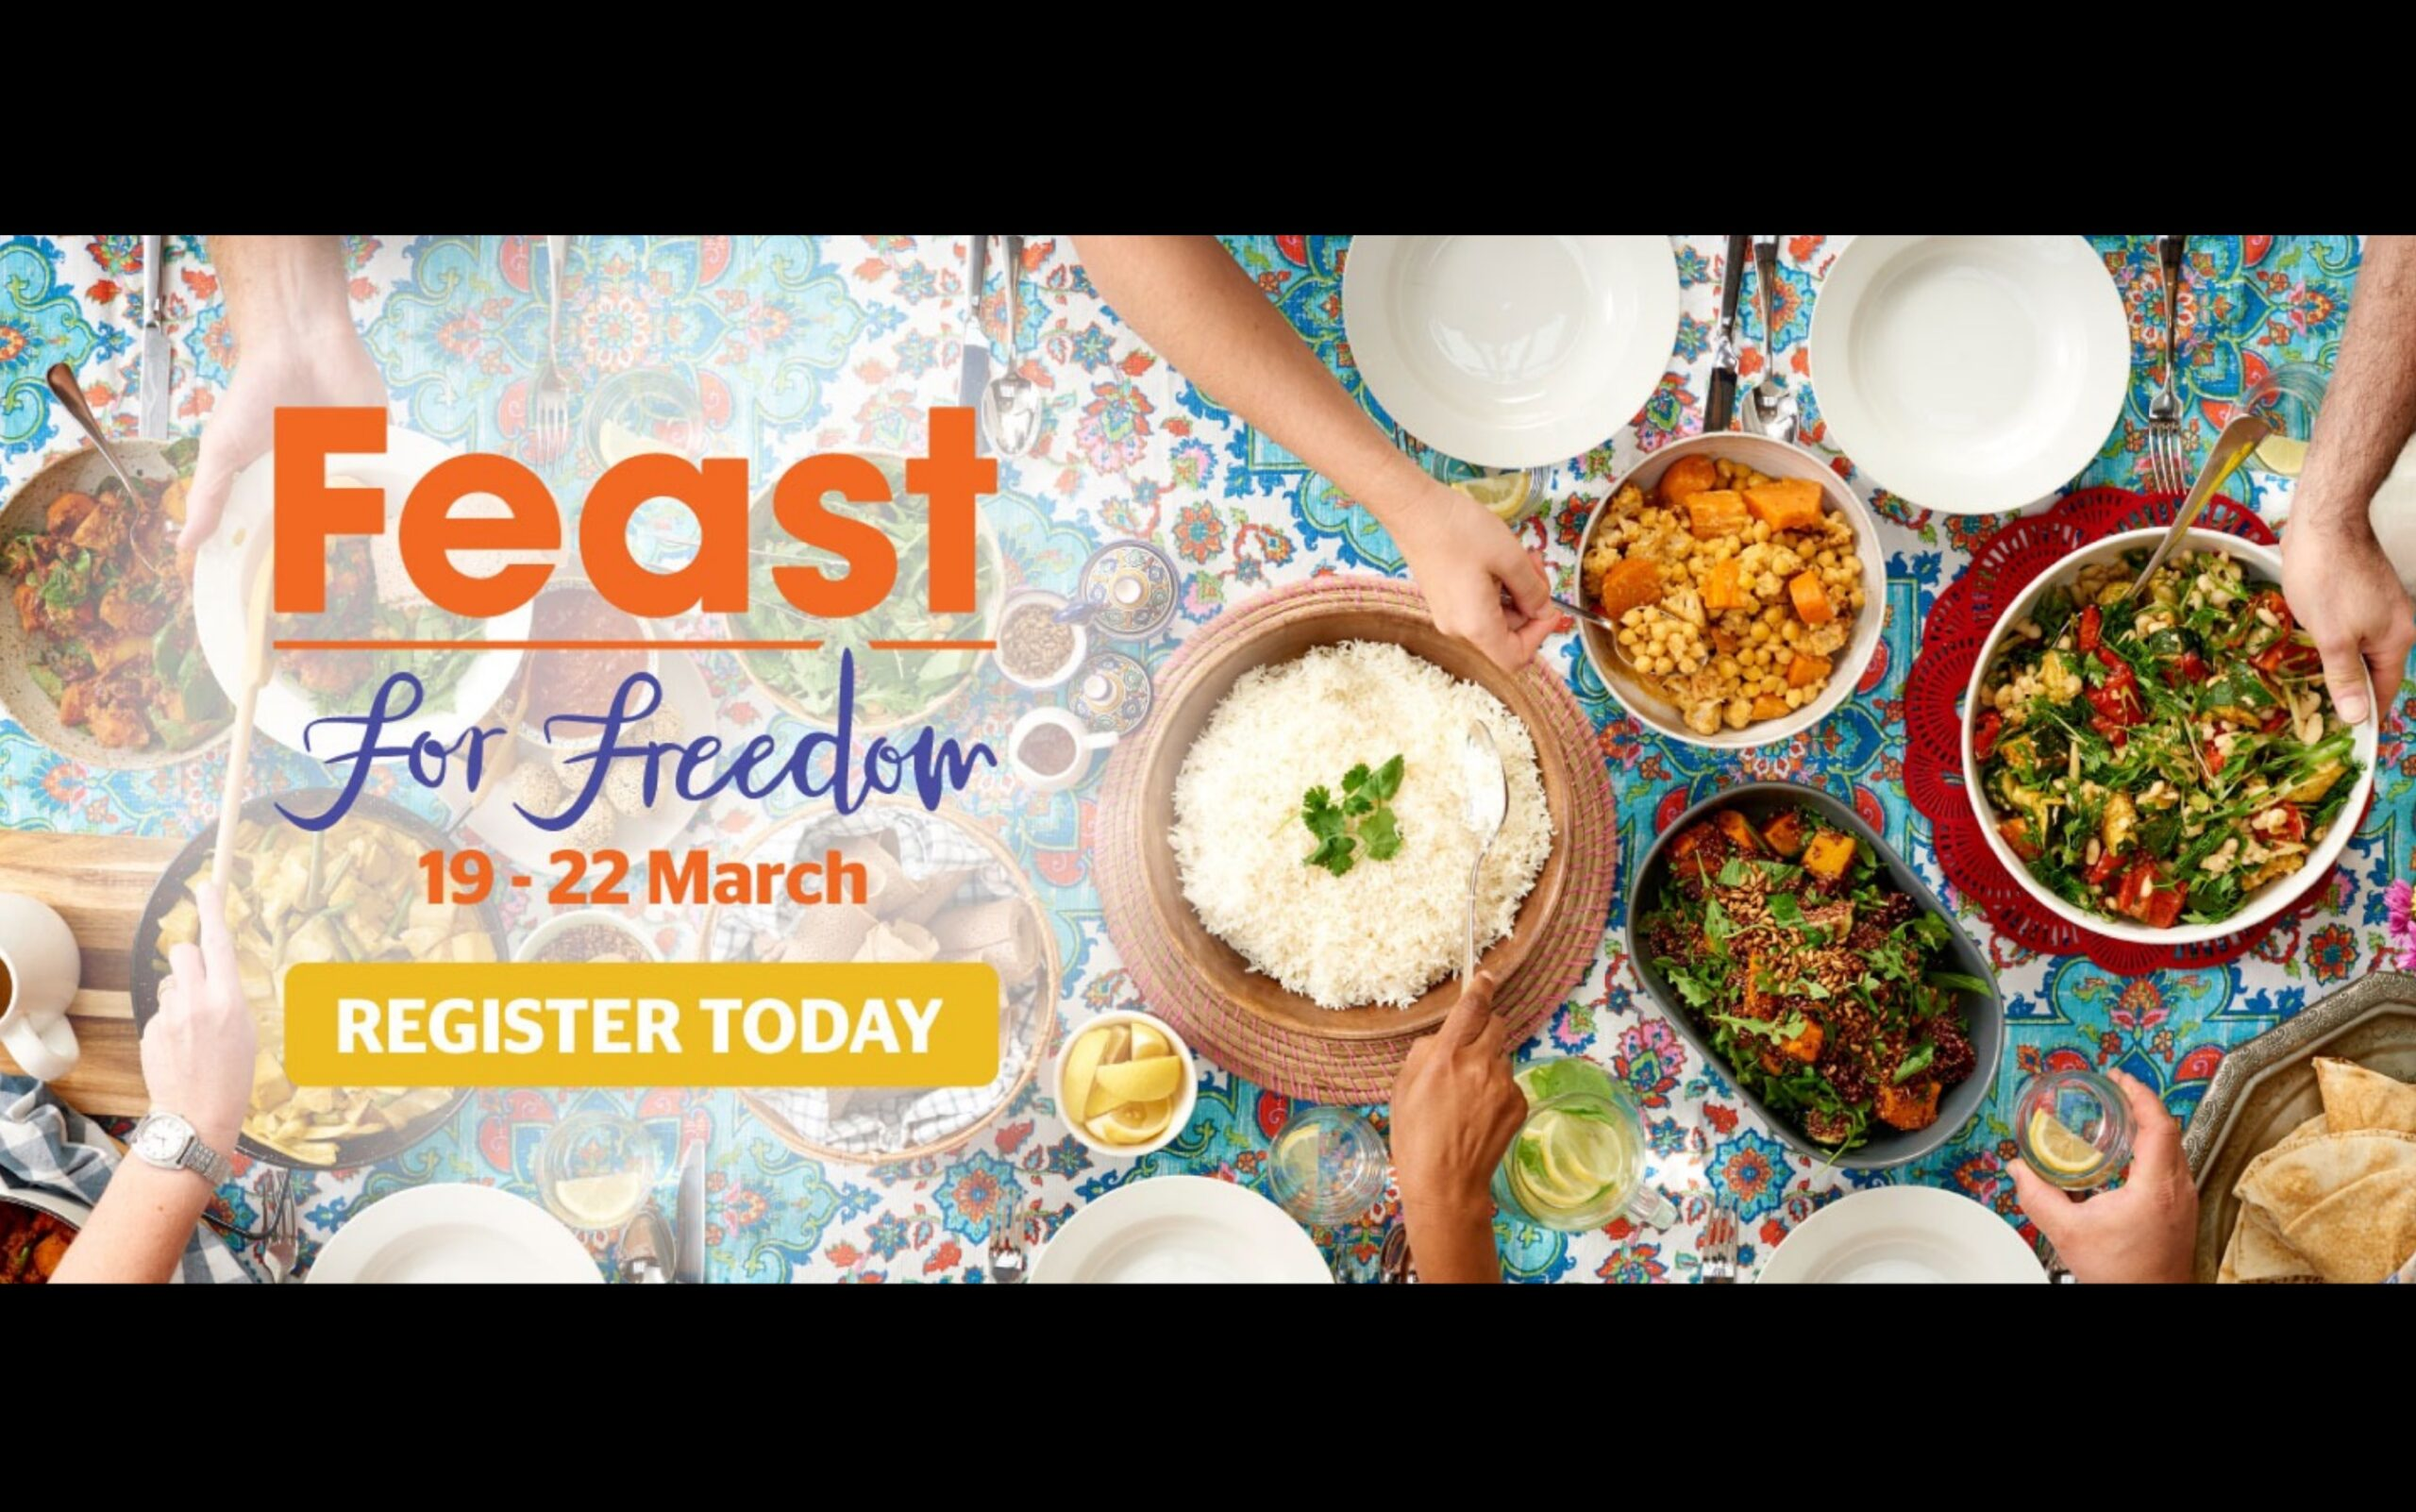 Register now to host your own Feast for Freedom this March: raising money for the ASRC (Asylum Seeker Resource Centre)